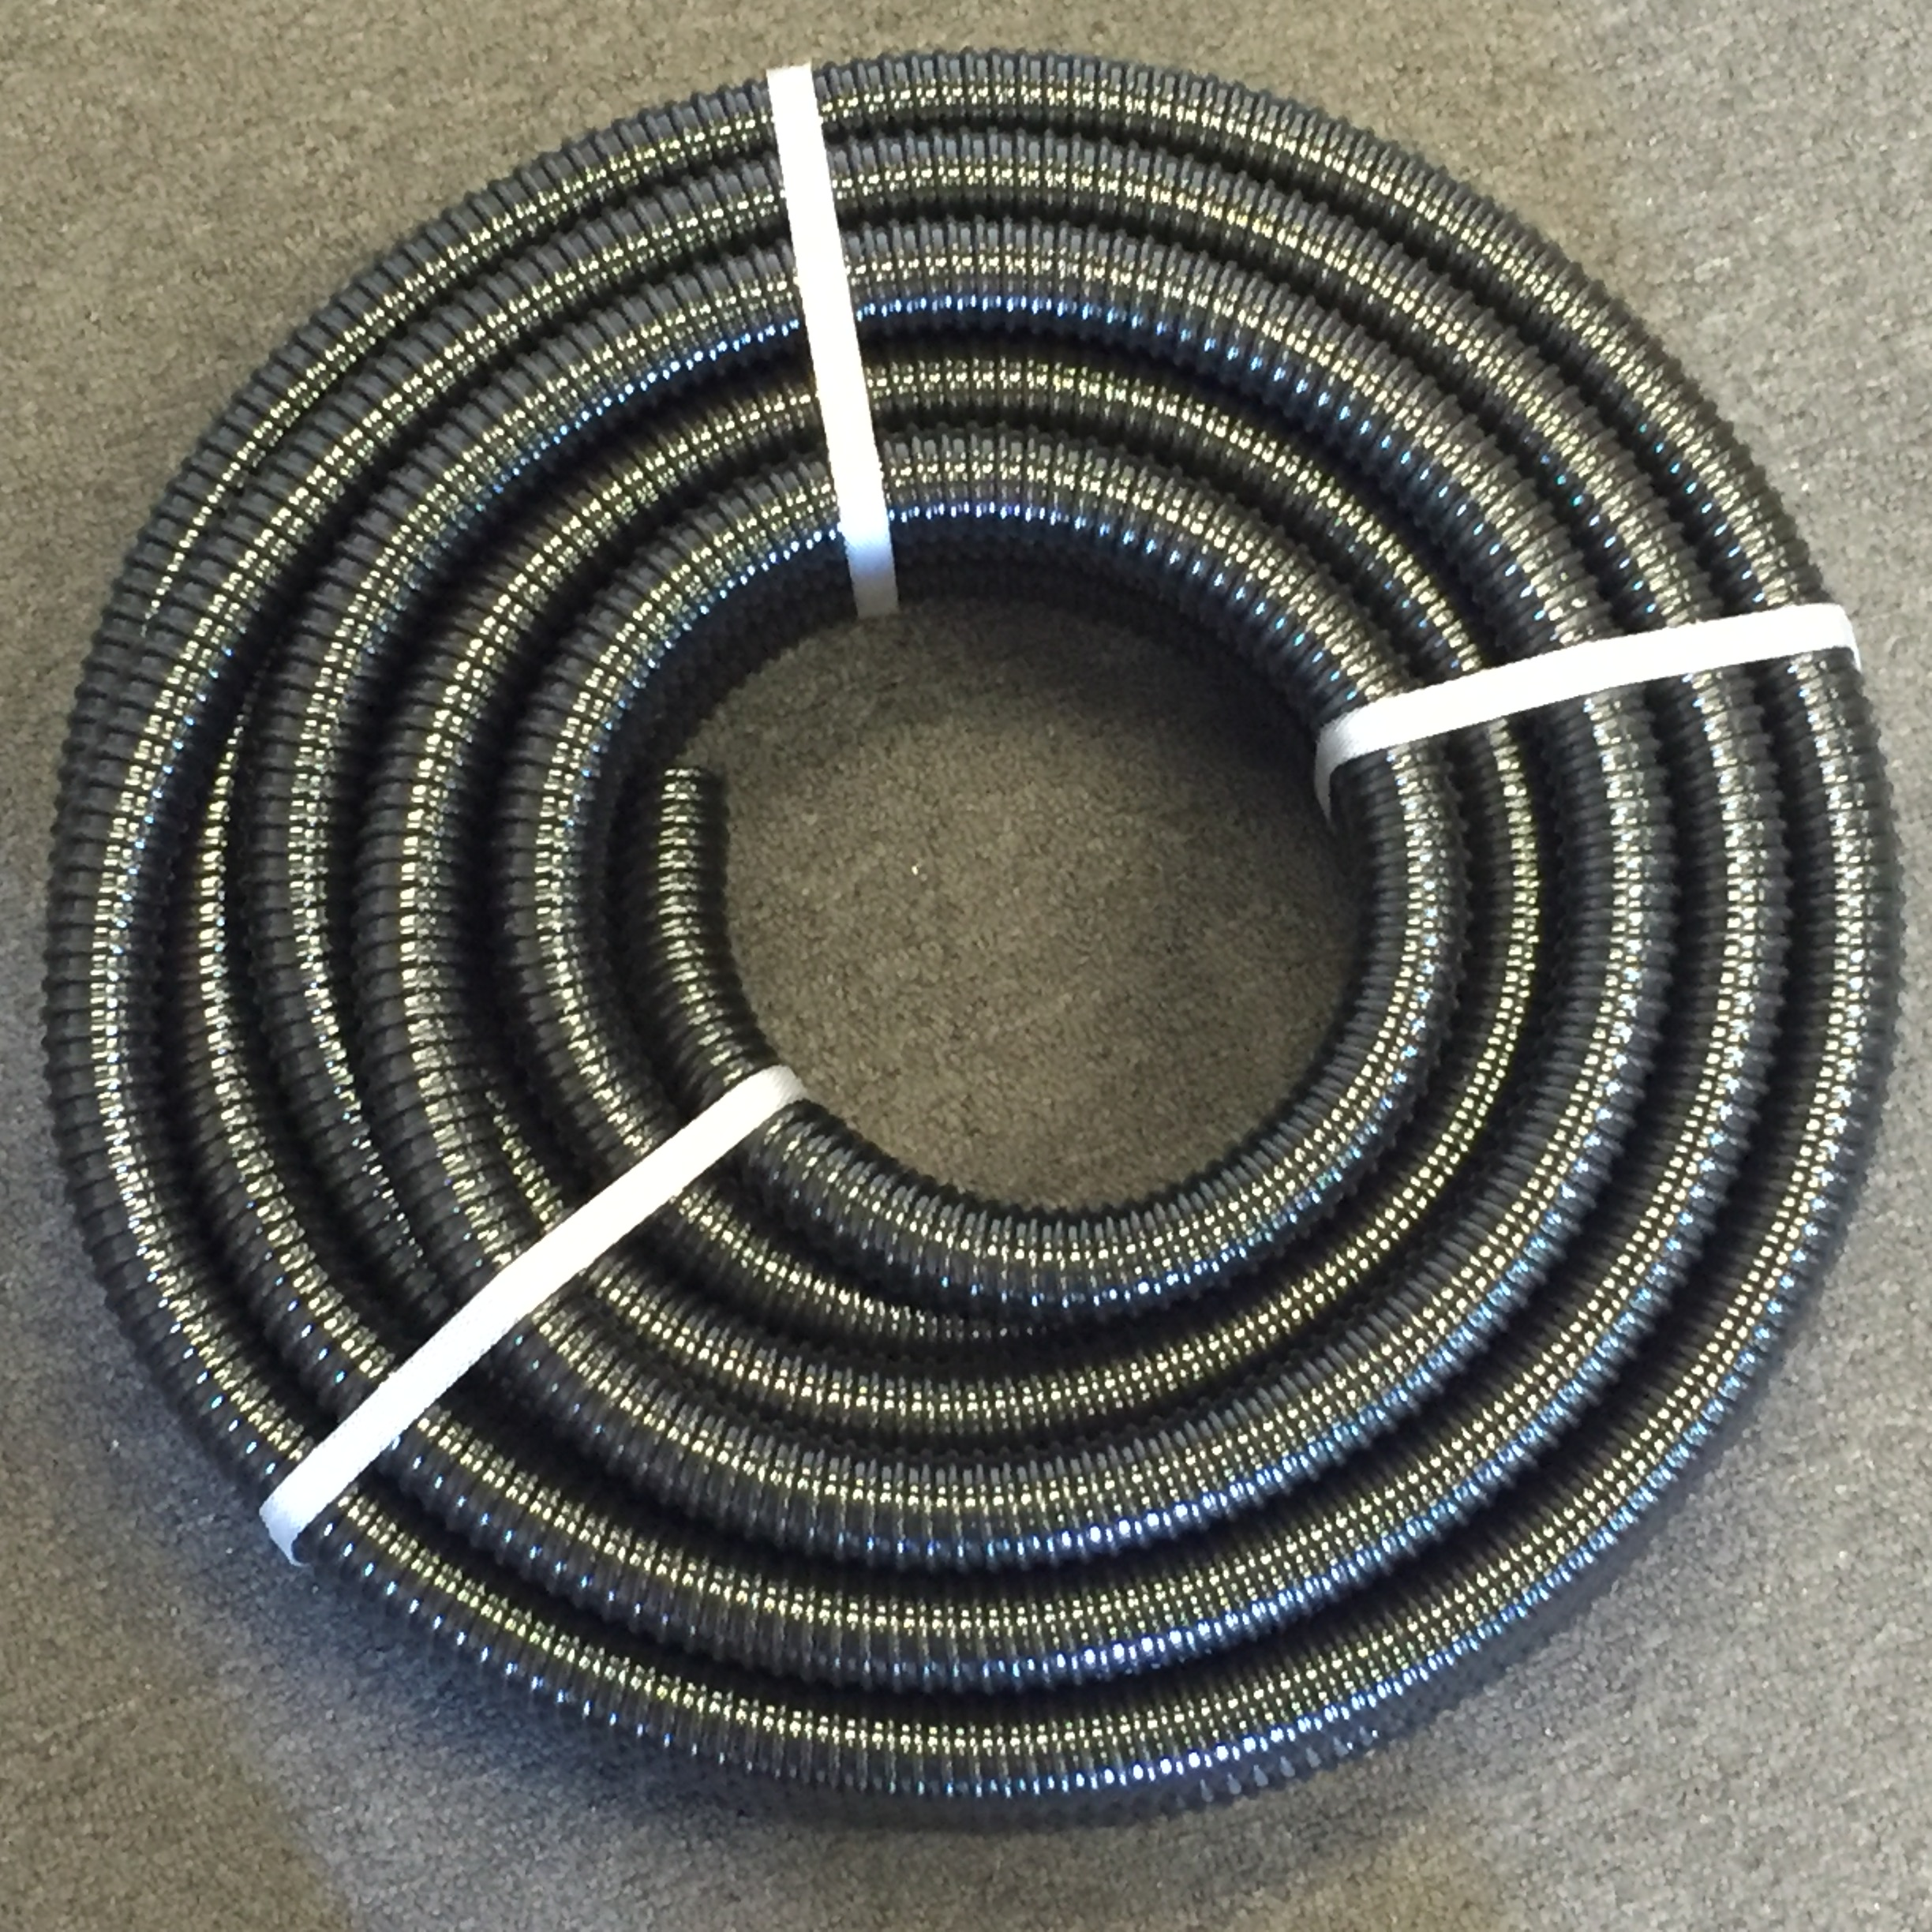 Waste water hose 25mm x 20mtr